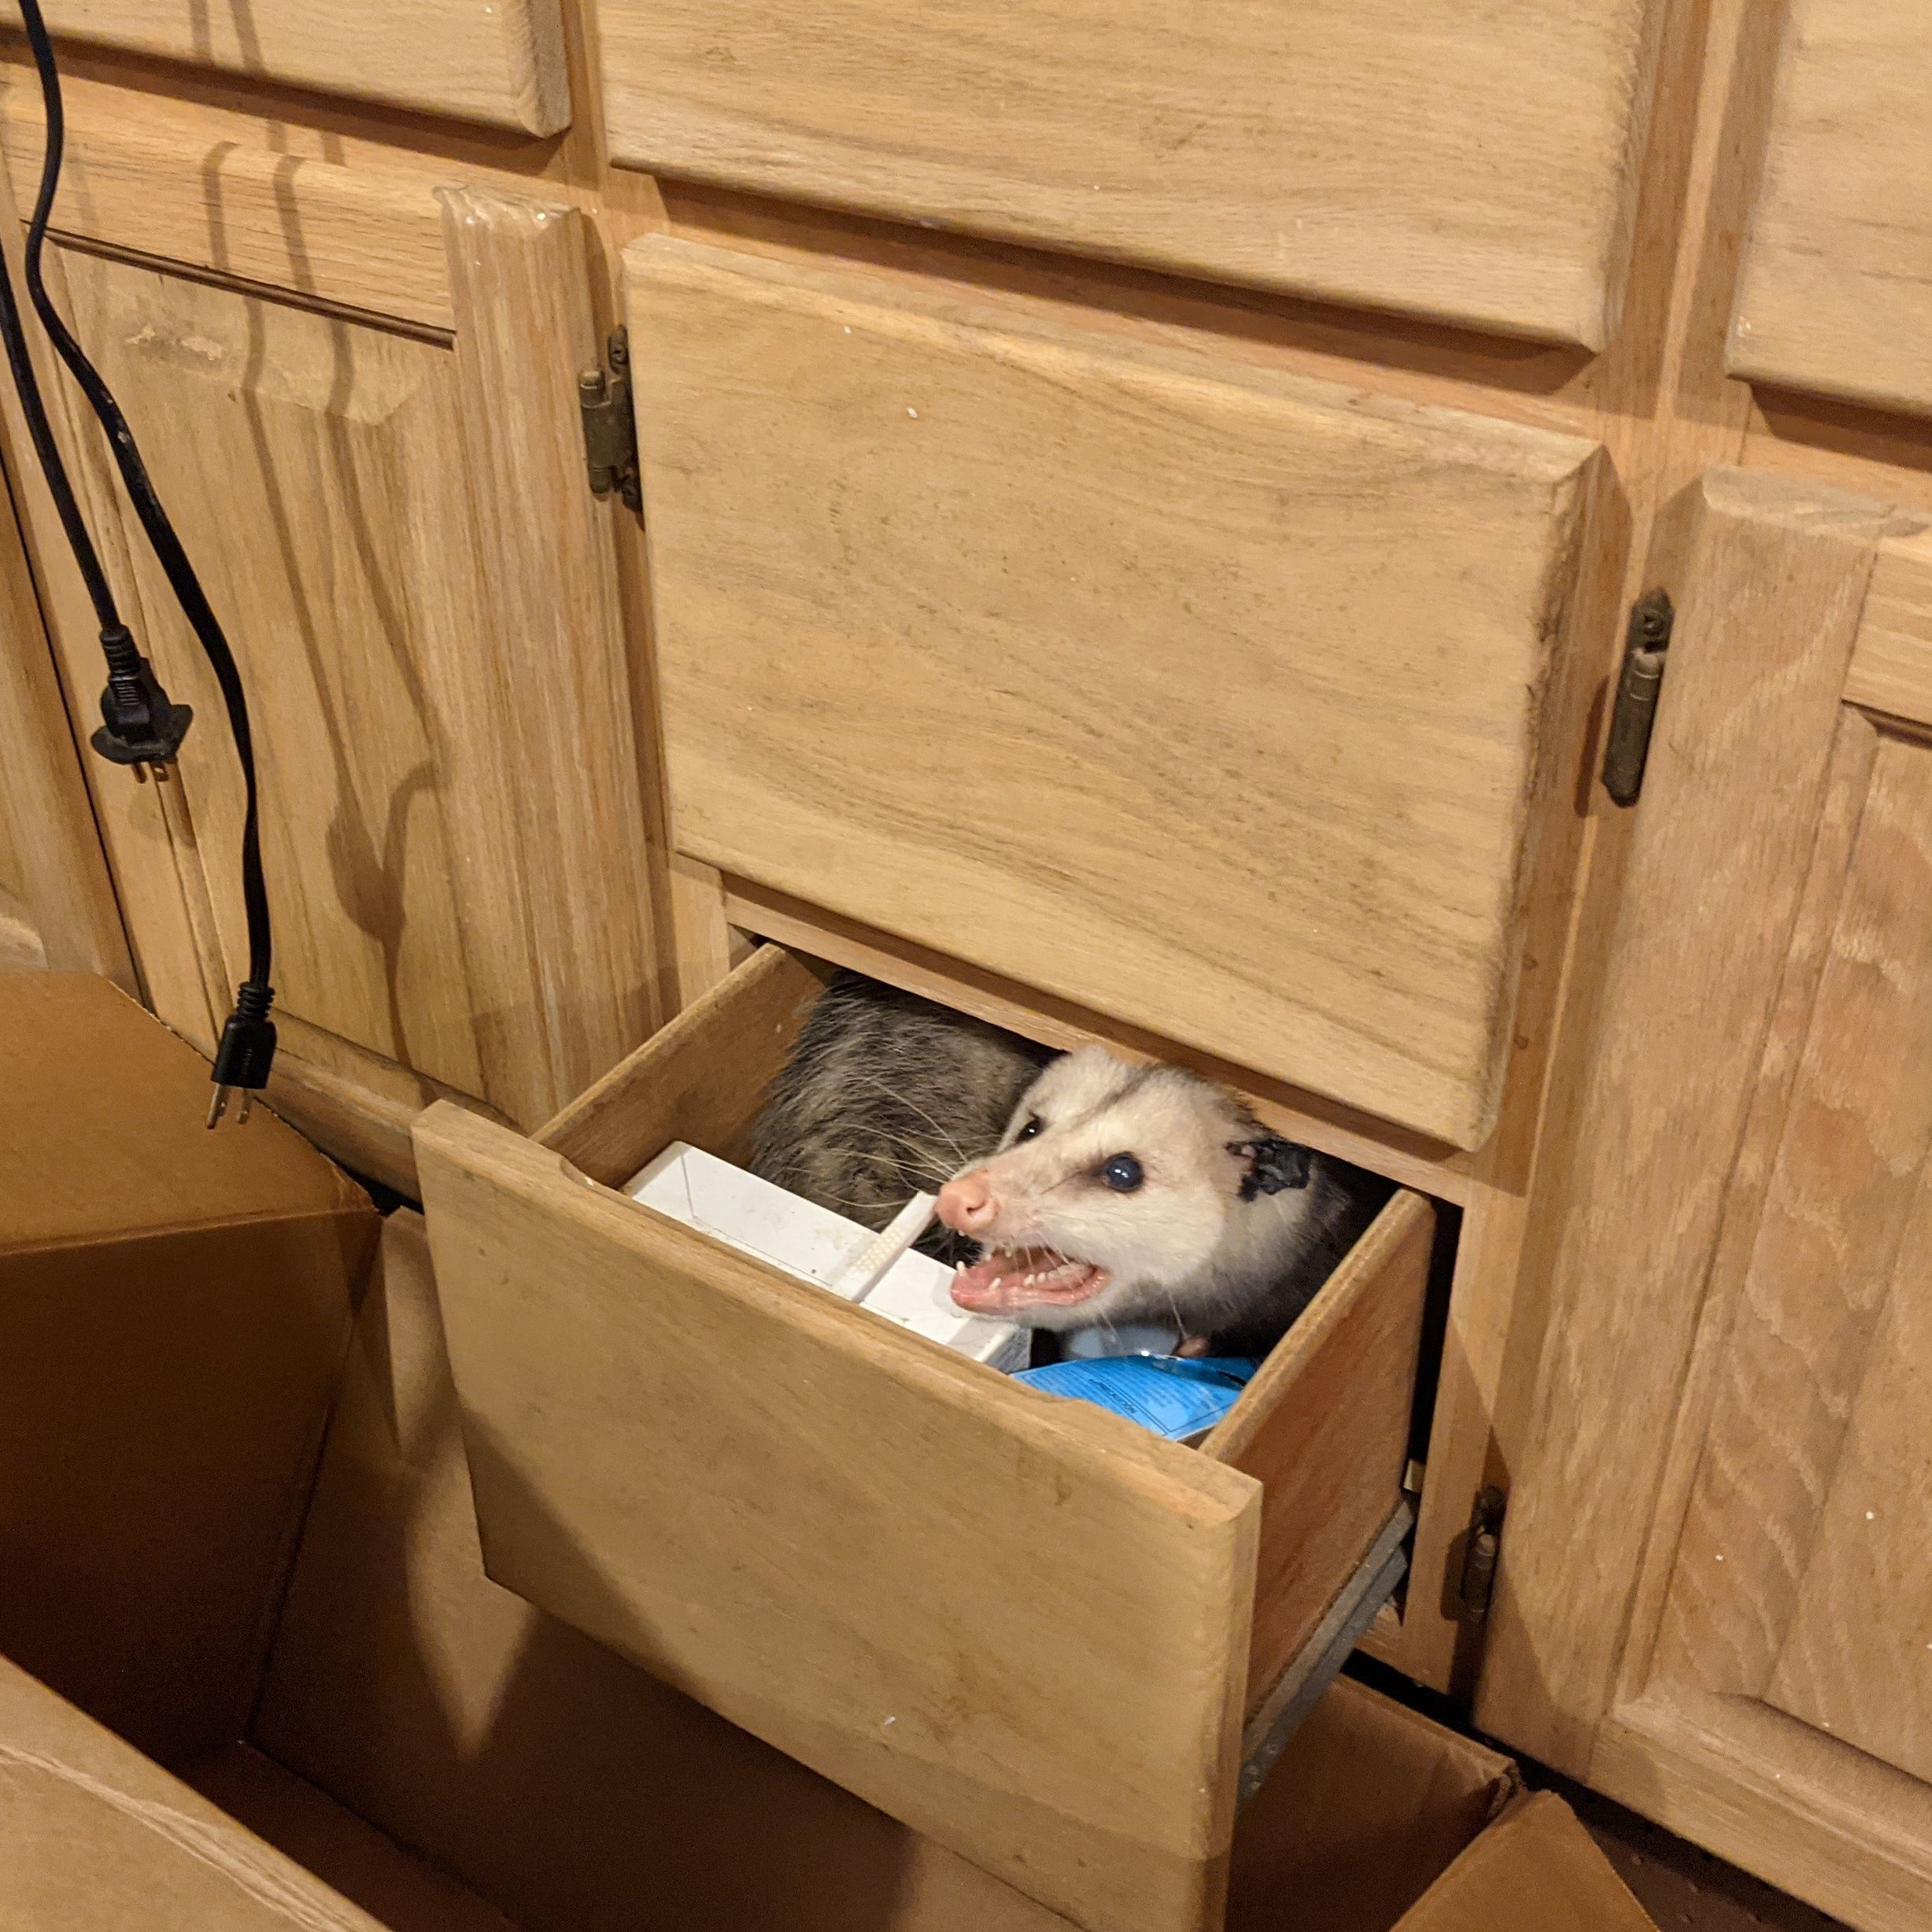 Guess this is her drawer now.